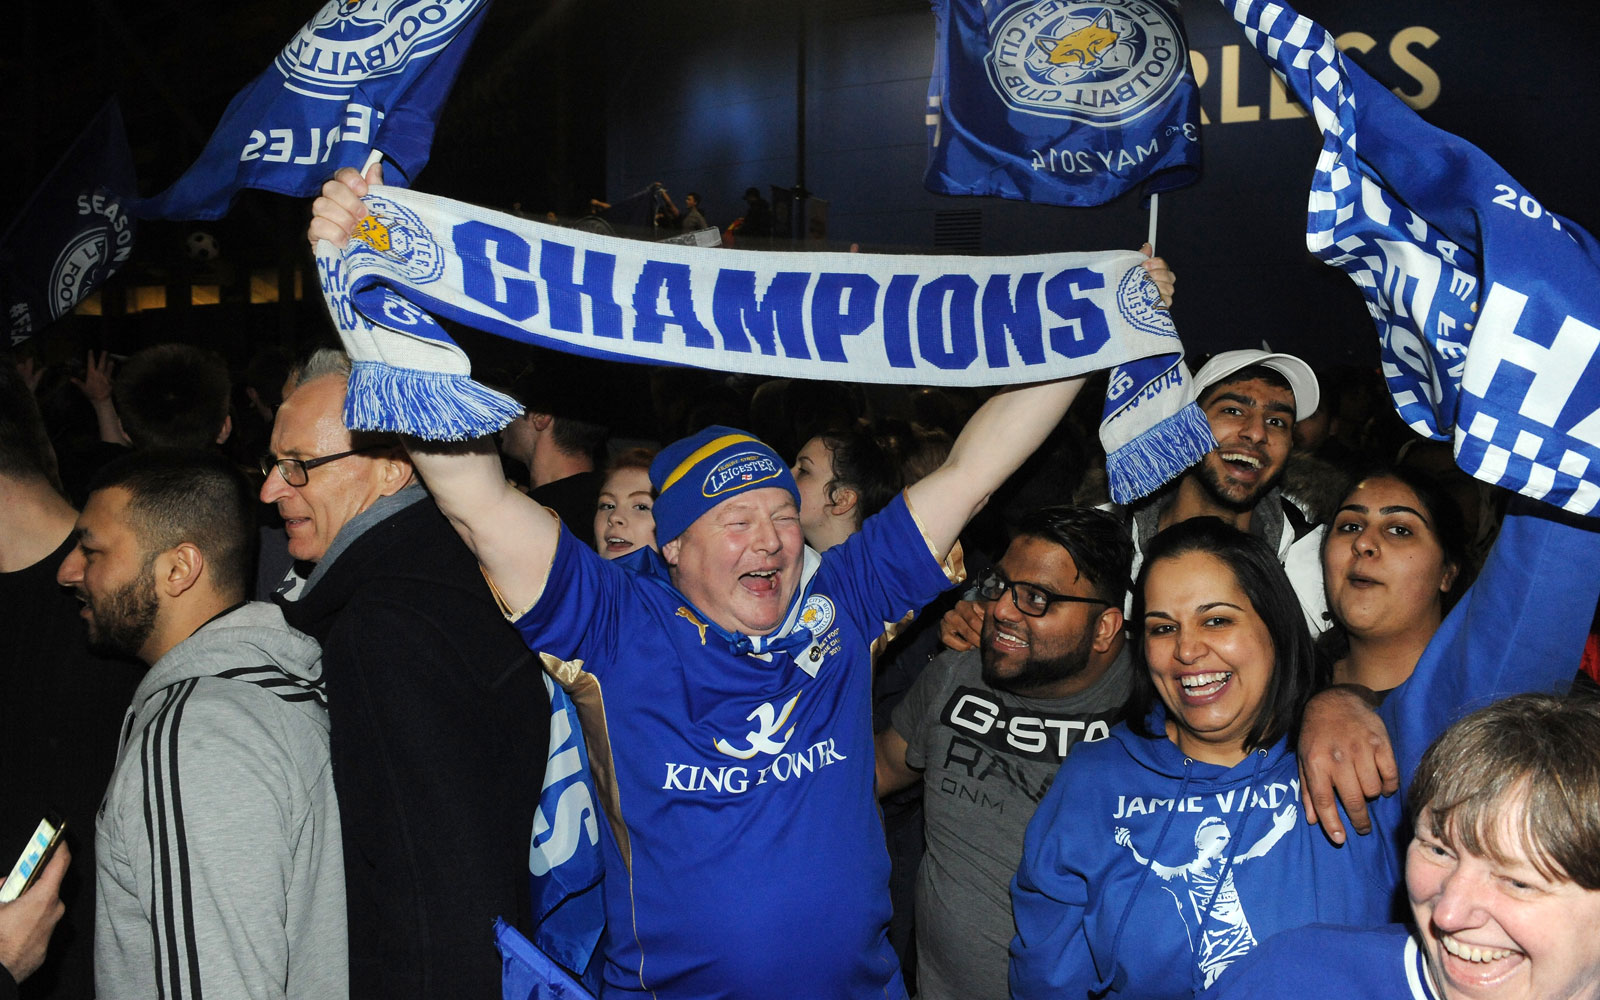 This Leicester fan's scarf says it all: Champions